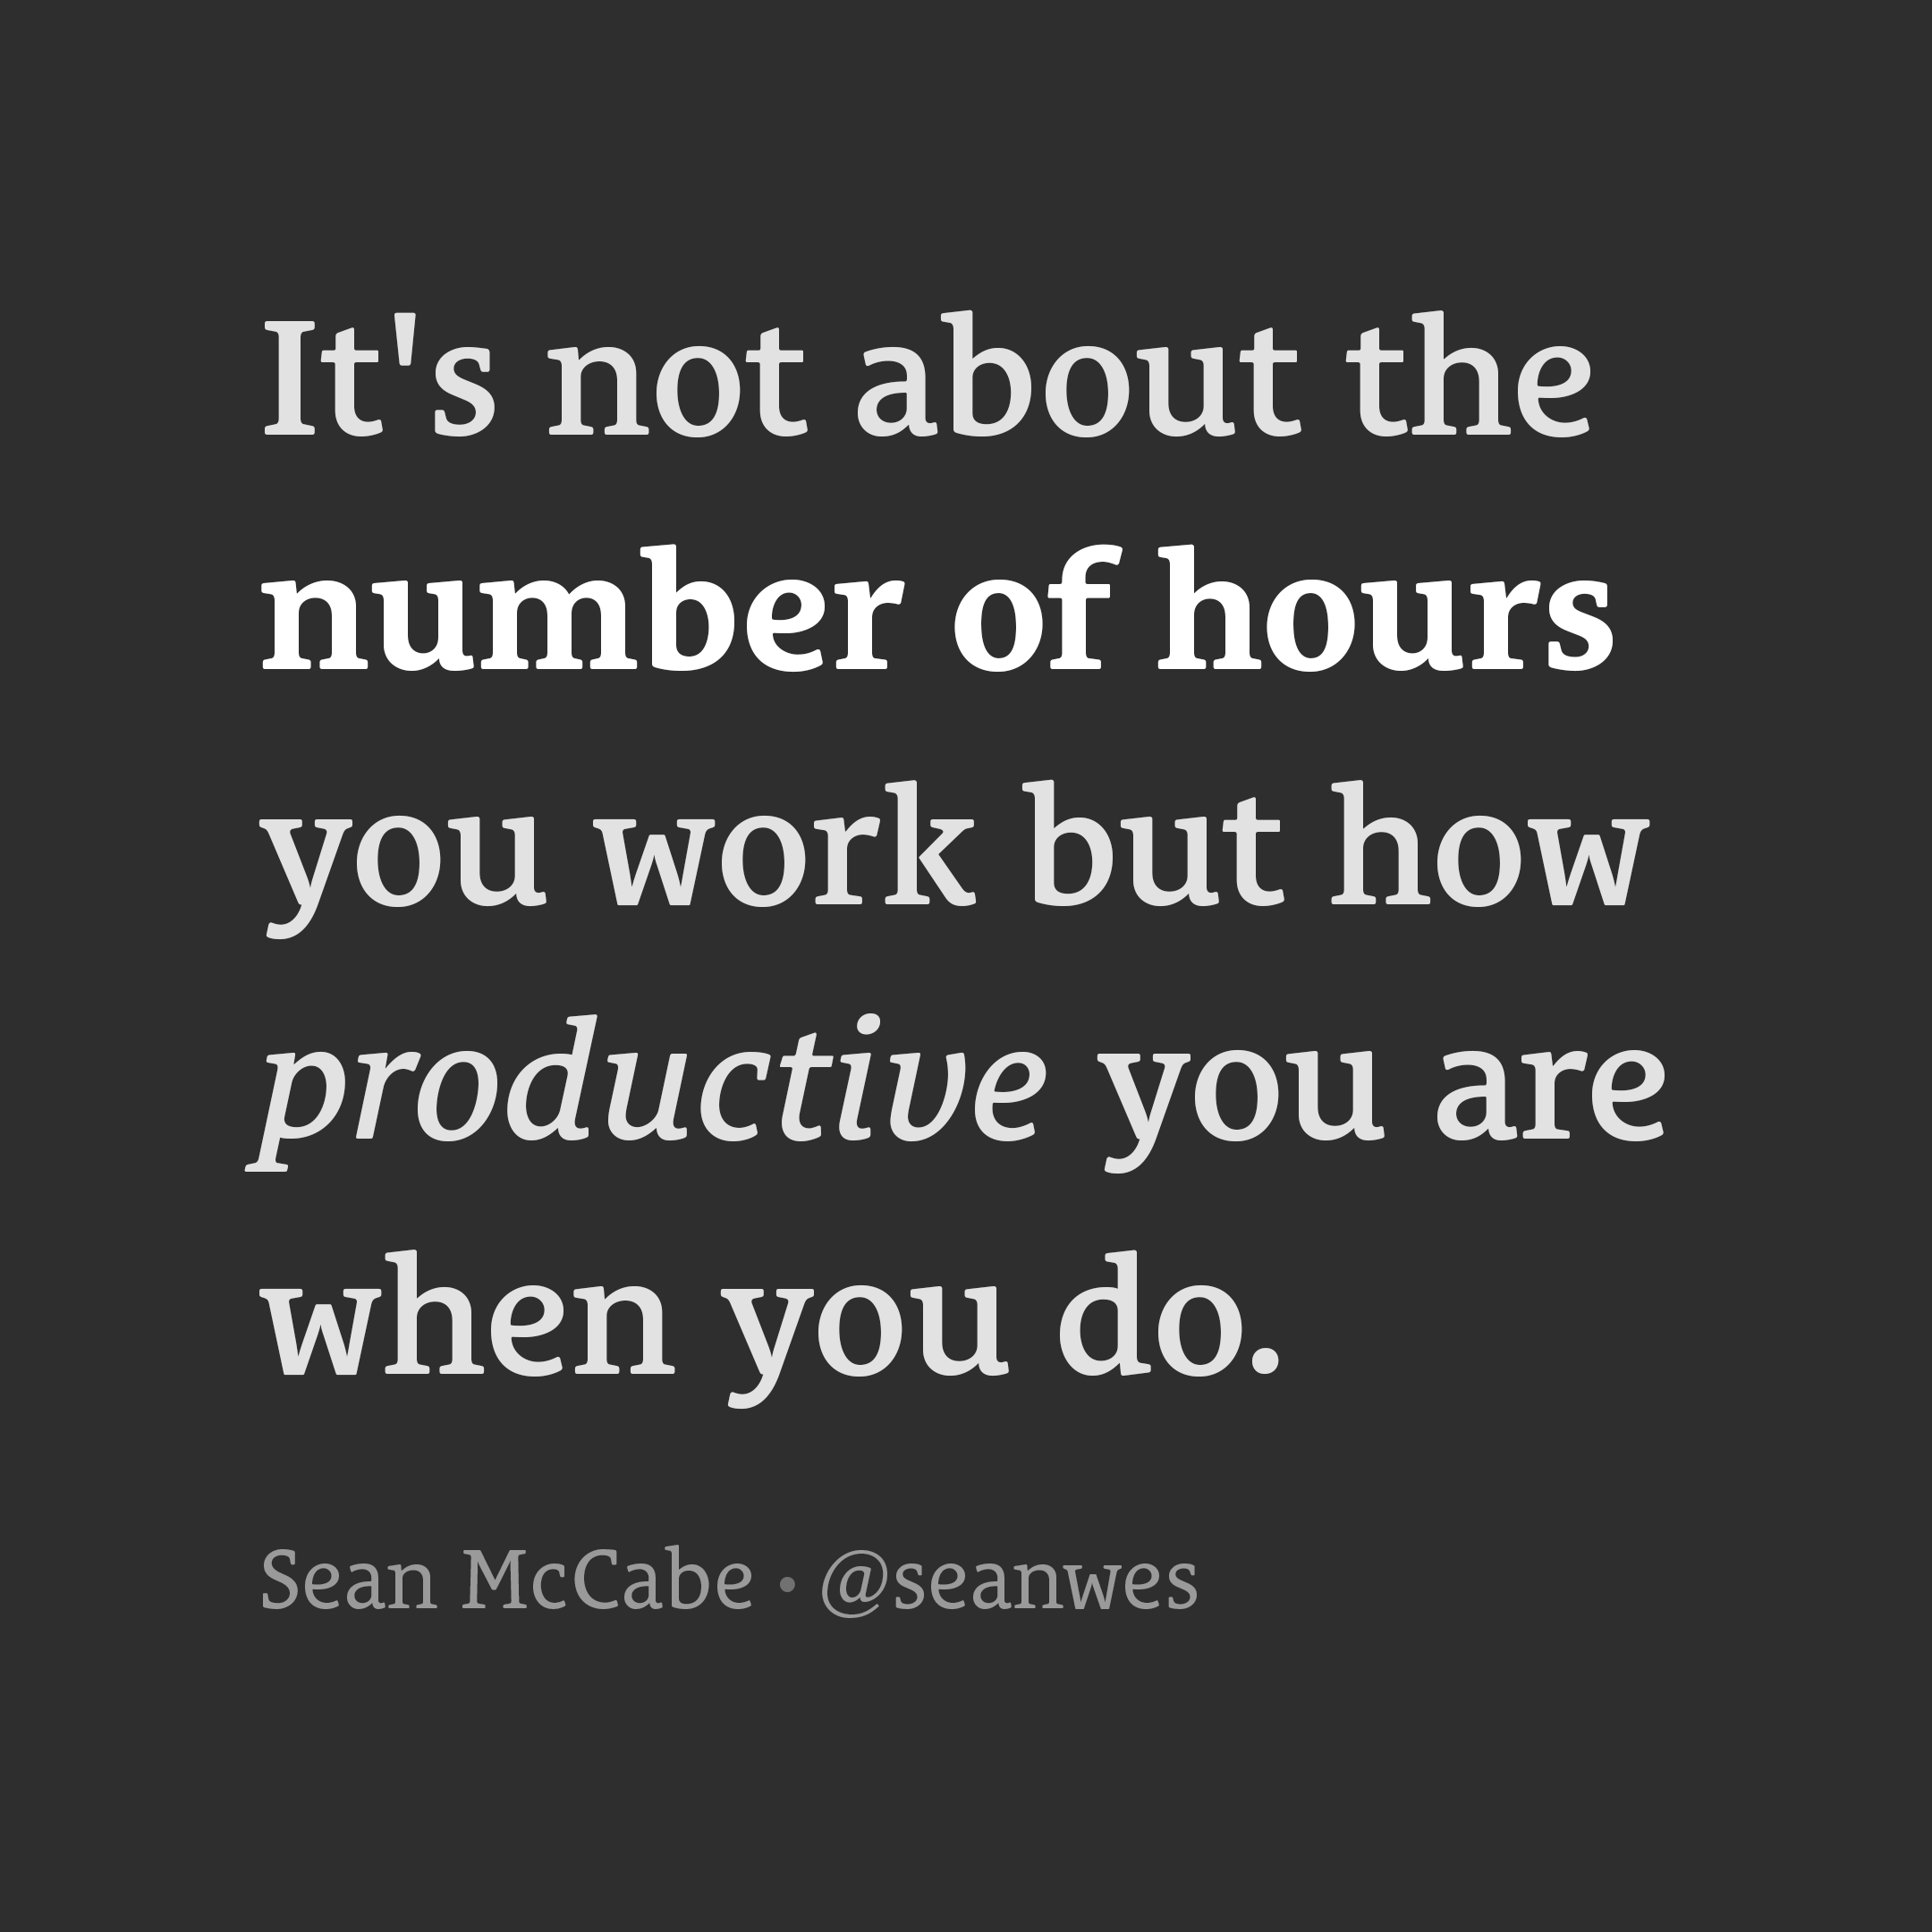 It's not about the number of hours you work.